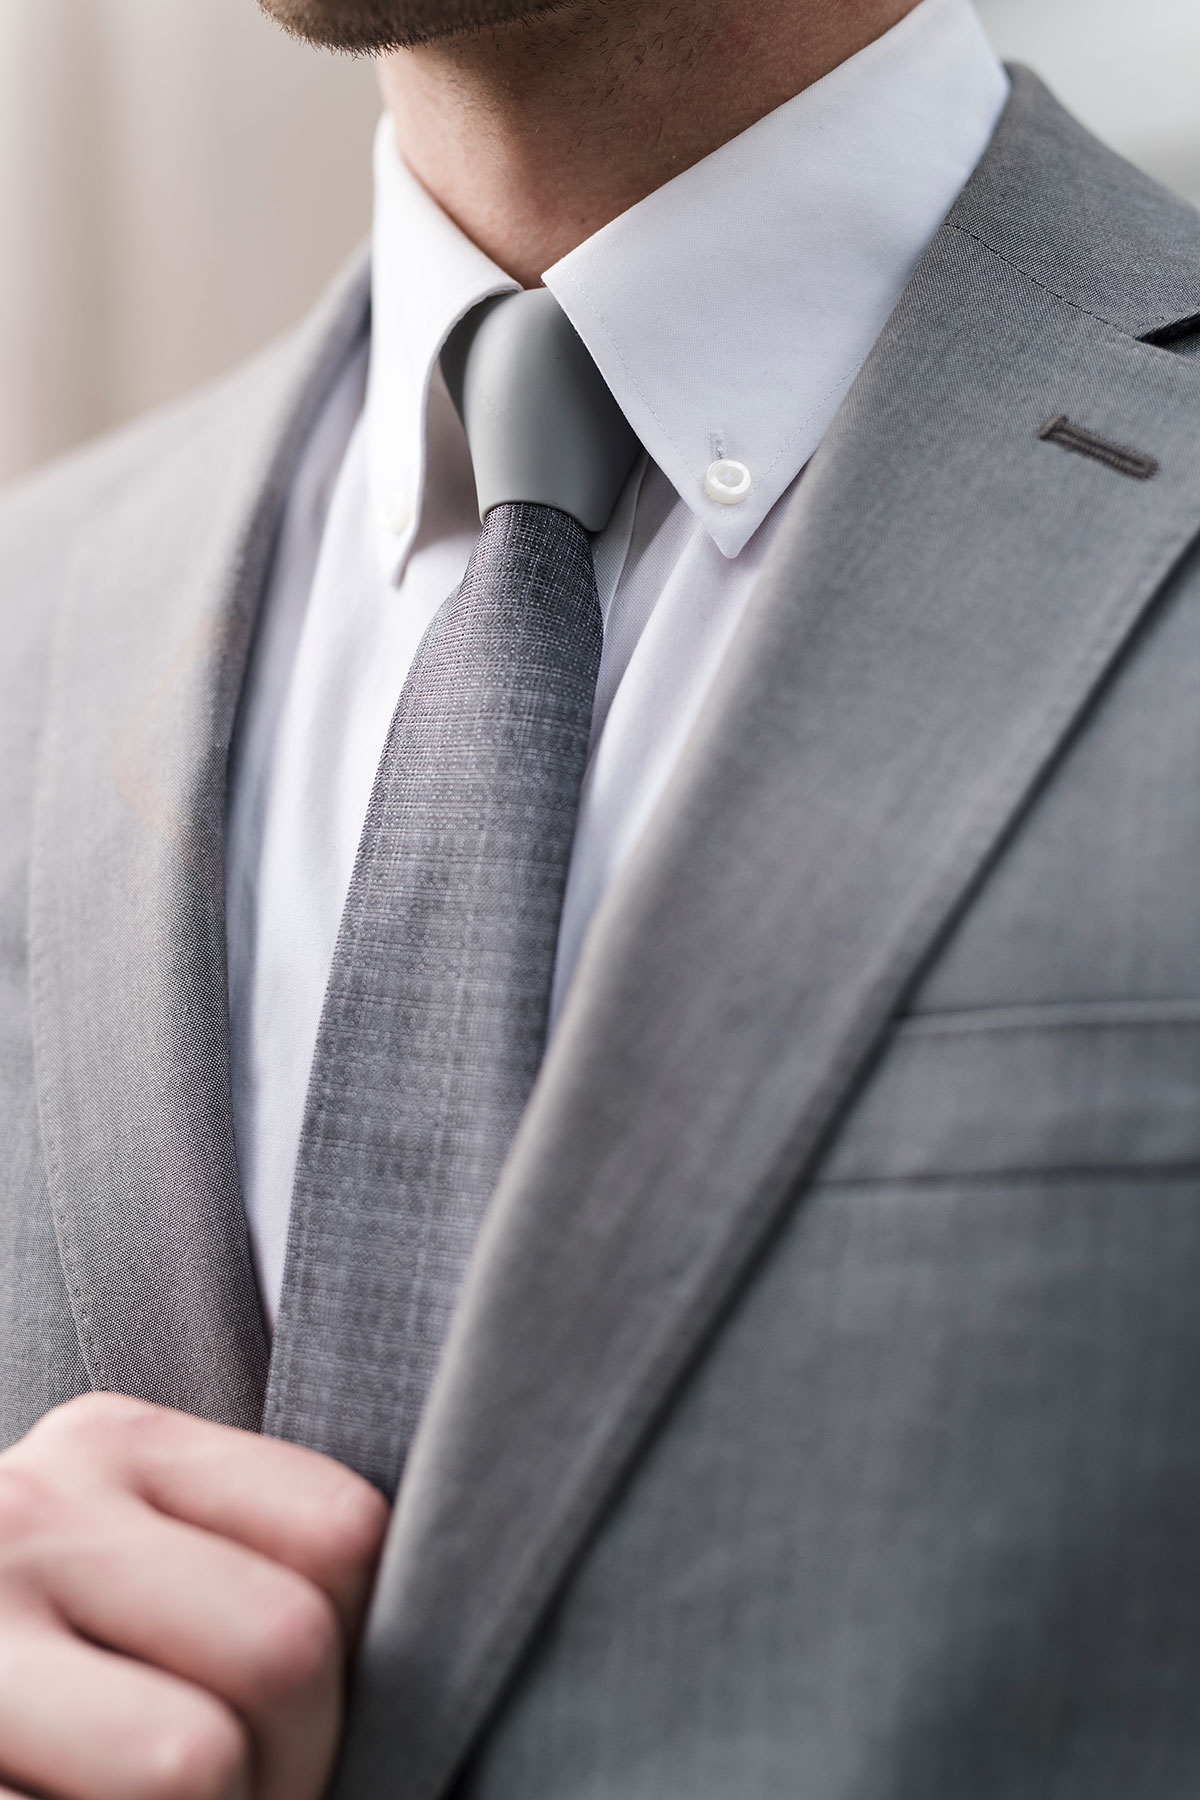 Modern Tie – The World's First Magnetic Necktie